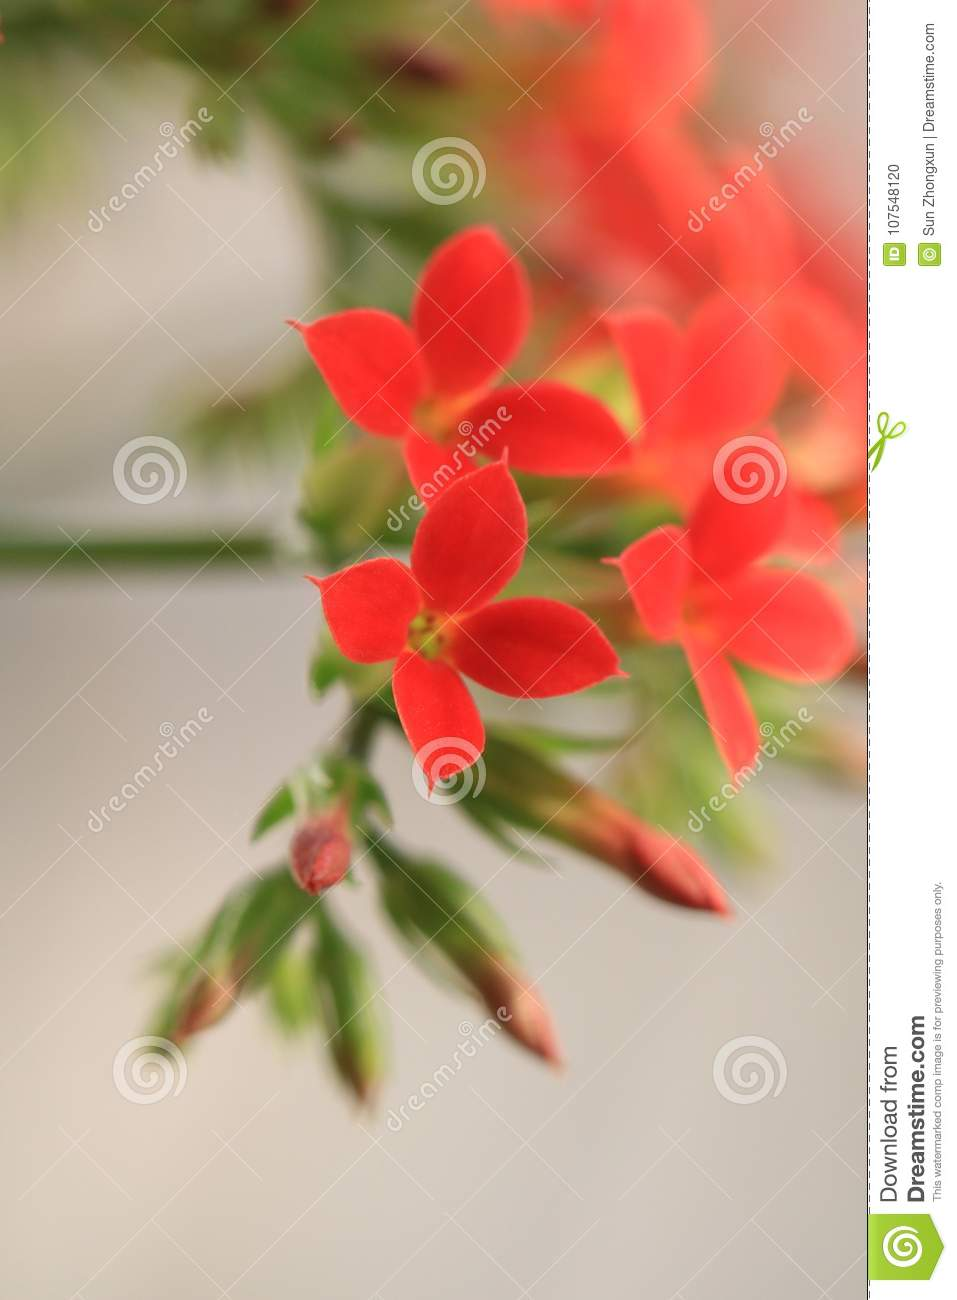 Garan dishlongevity flowers stock photo image of culture high implied meaning of plant culture is considered auspicious longevity lucky flower another name for longevity flowers izmirmasajfo